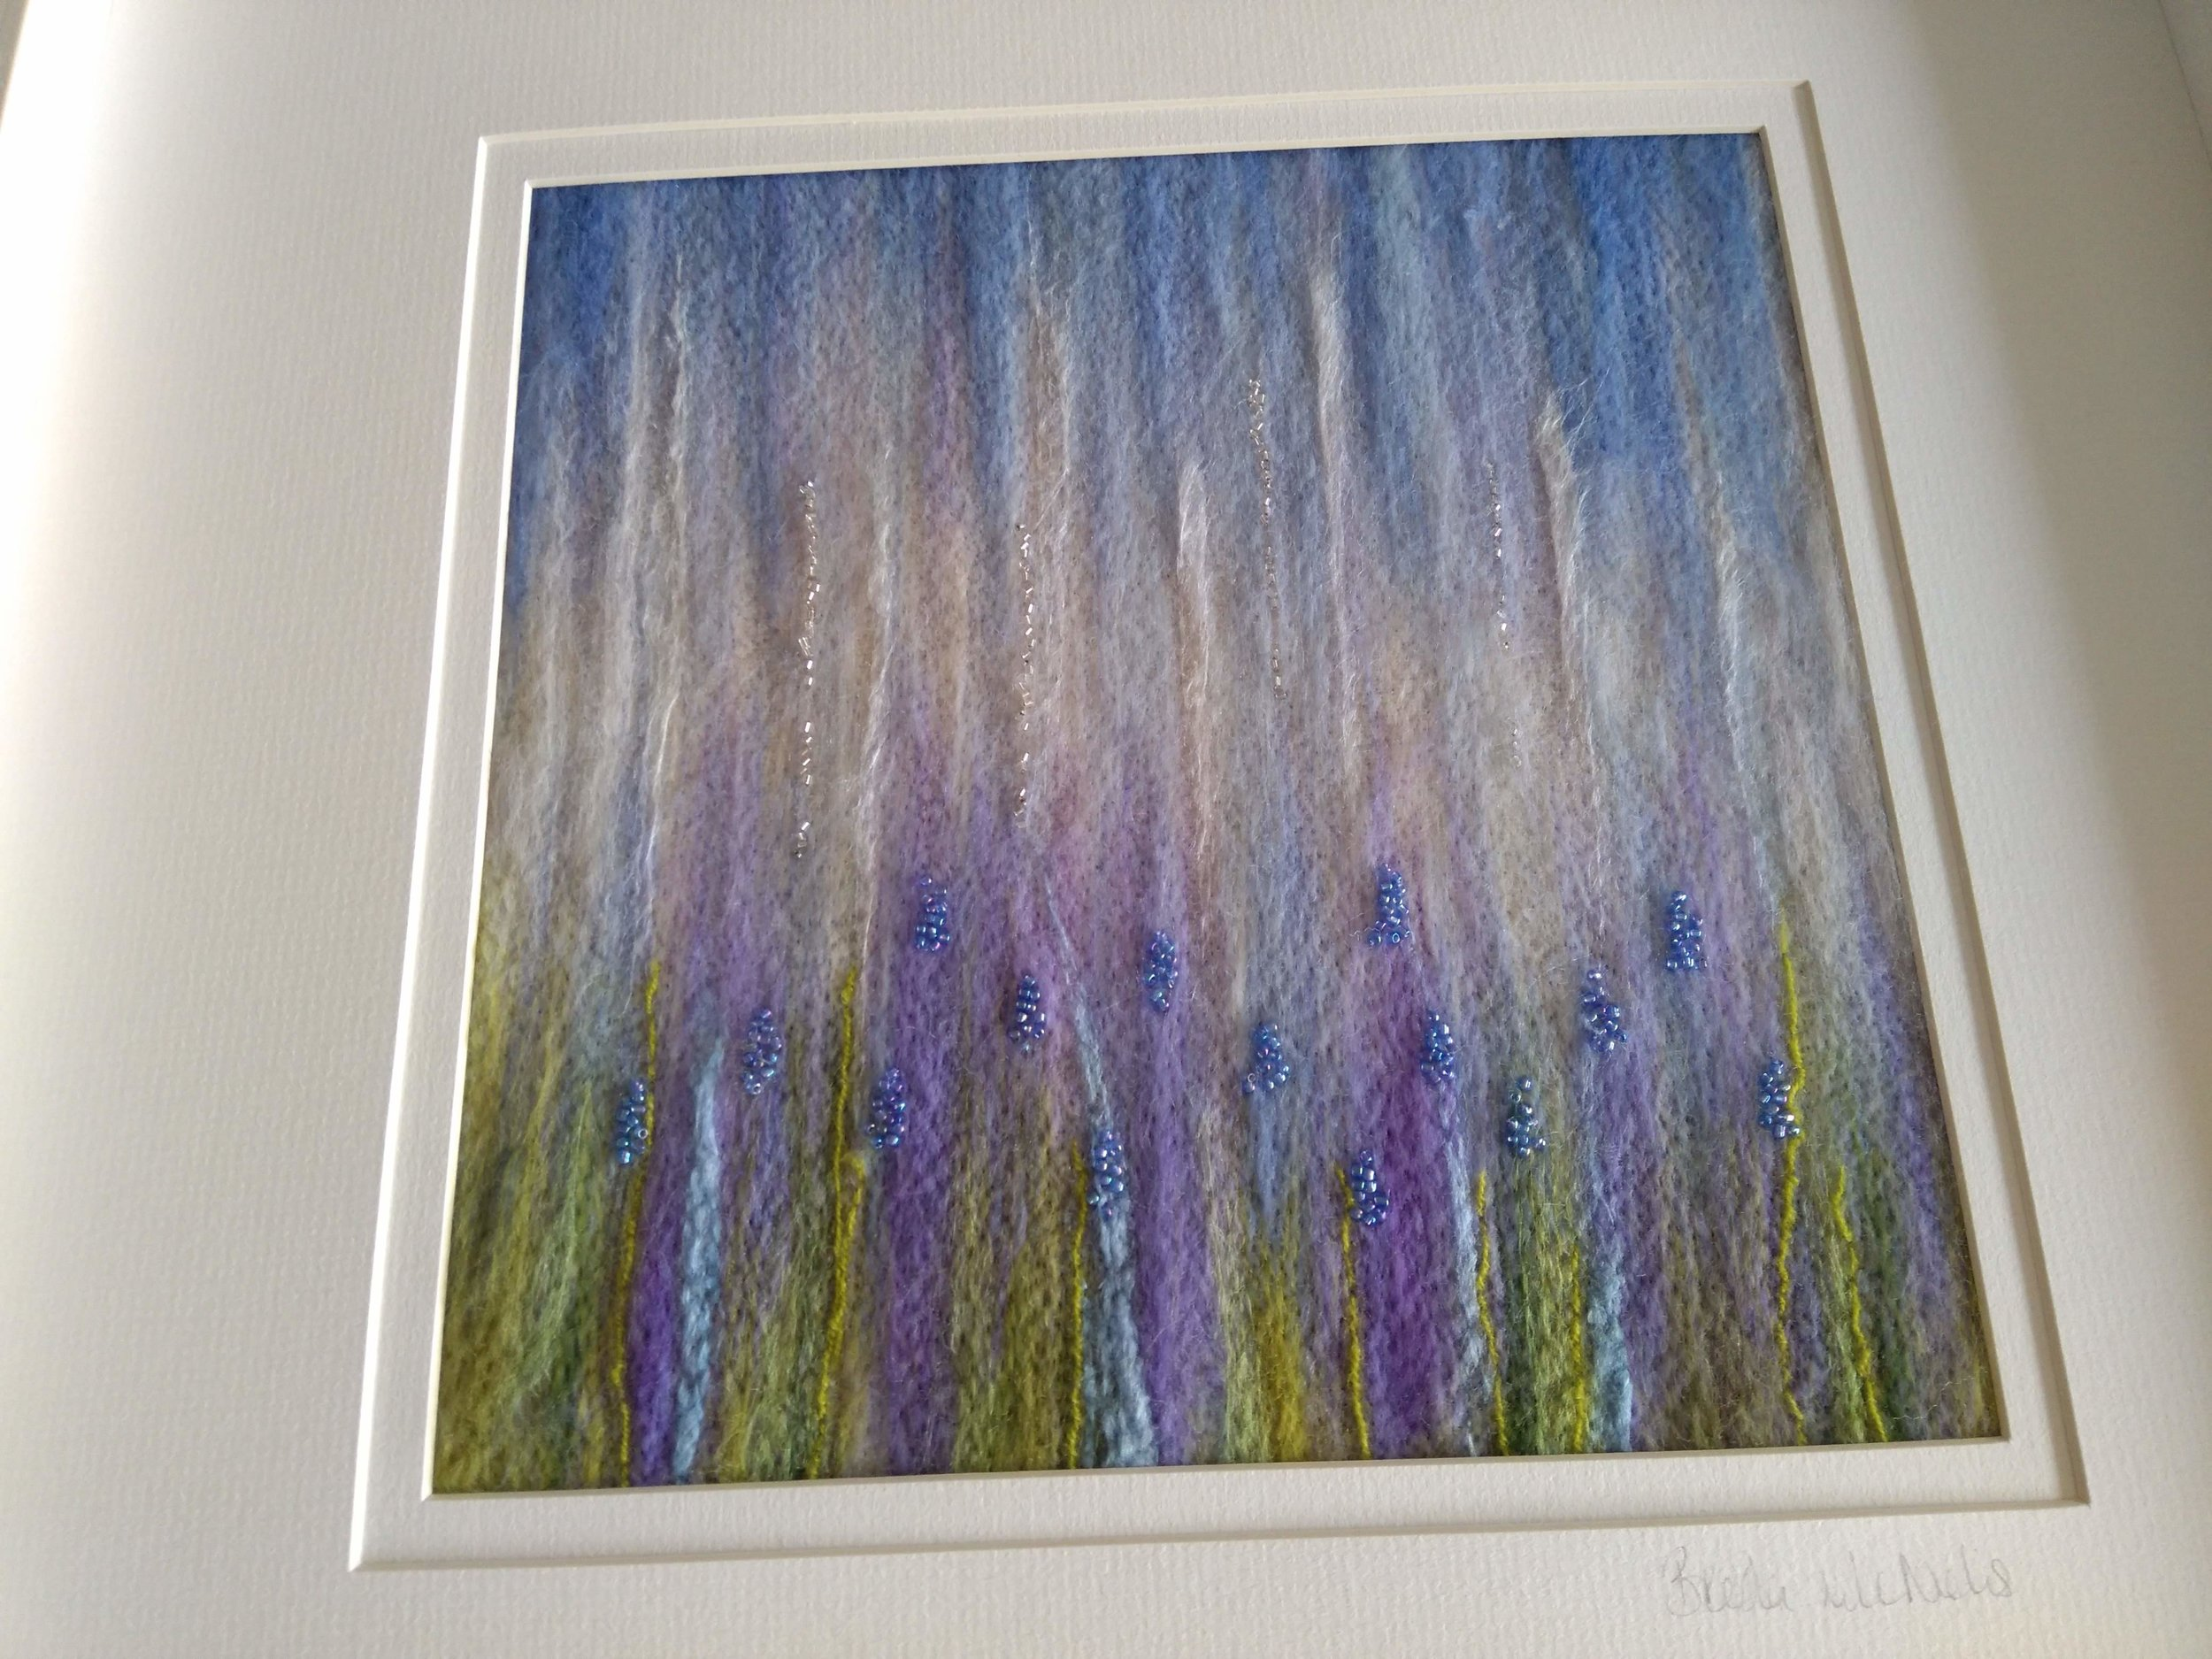 'Raindrops on Bluebells' available at The Gallery Listoke. This piece is in a frame approx 50 x 50 cm. I also have some smaller pieces available at the gallery.